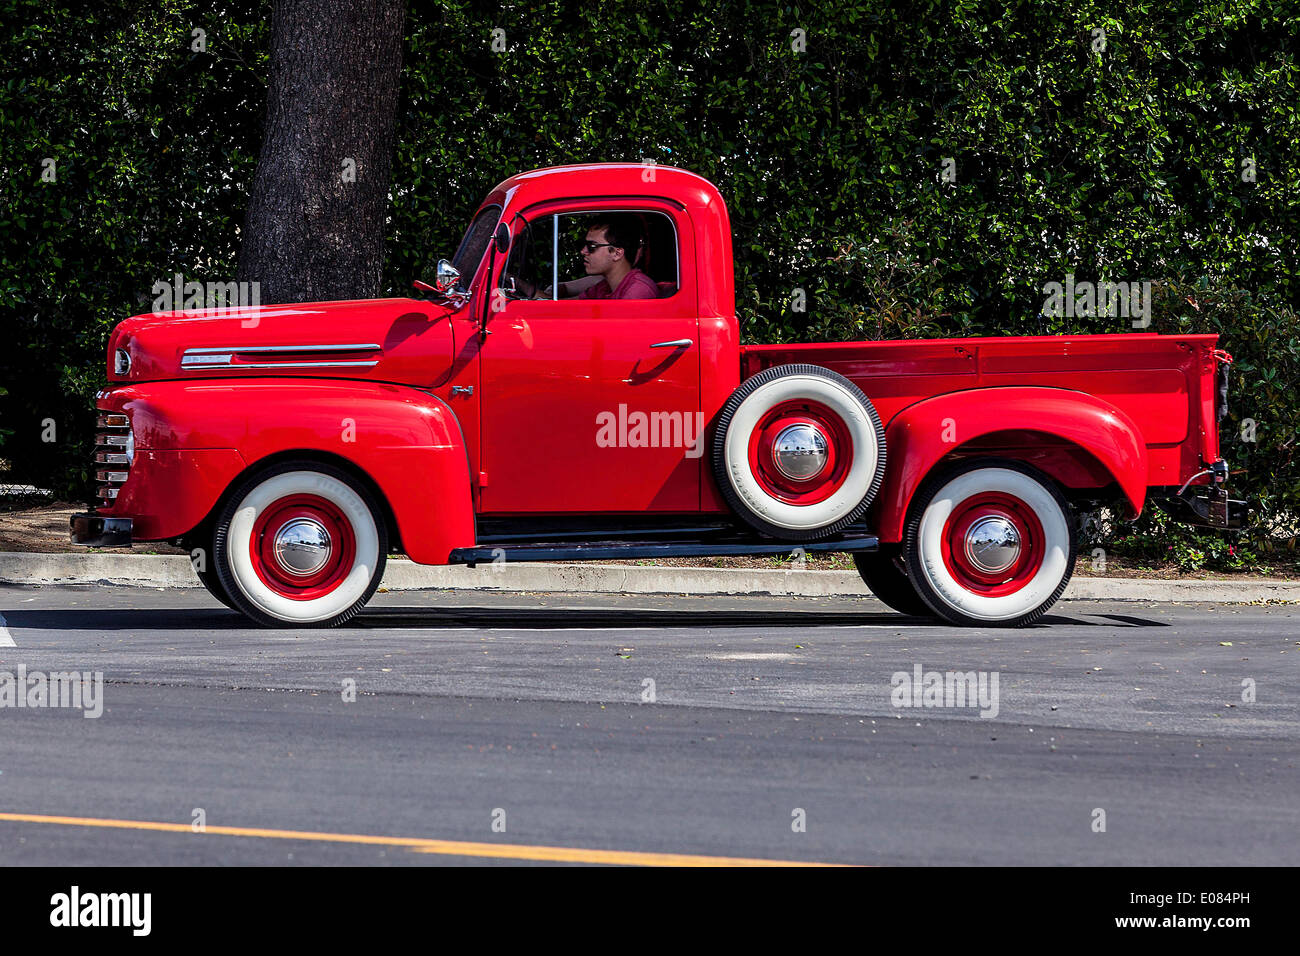 Exhaust Smoke Truck Stock Photos Images 1948 Ford Cast S A 1949 Or 1950 Image